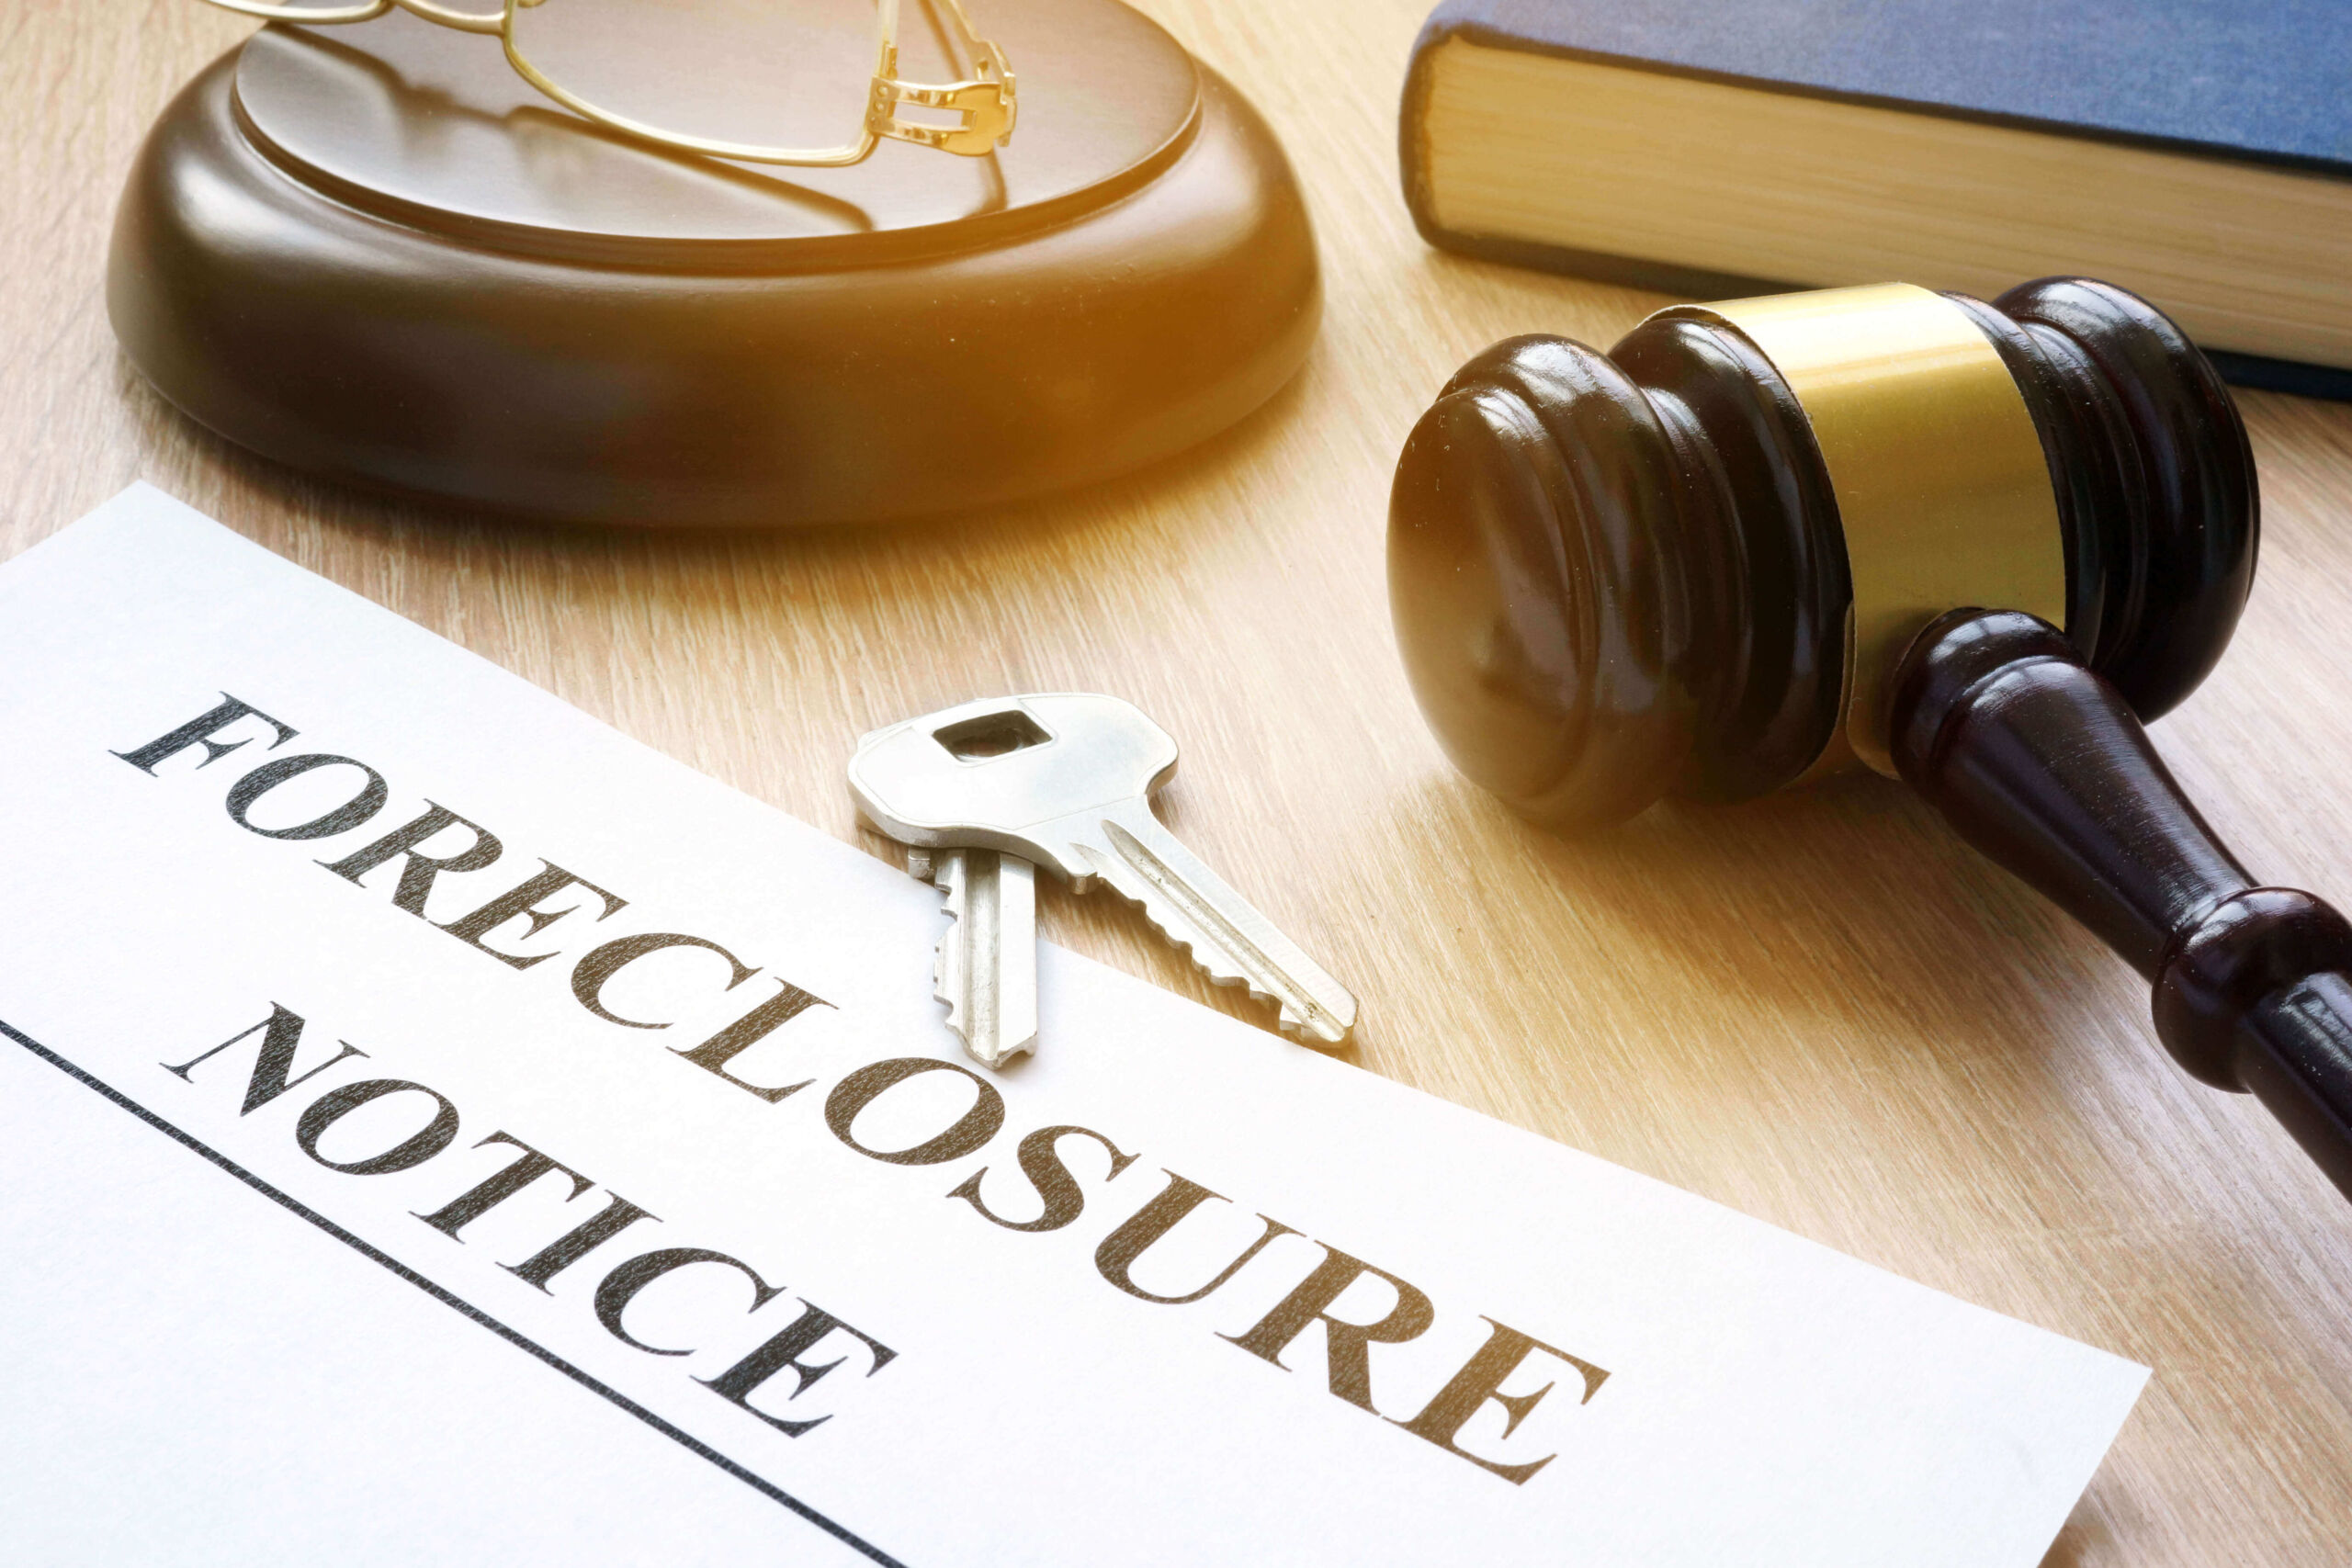 Power of Sale and Foreclosures Lawyer